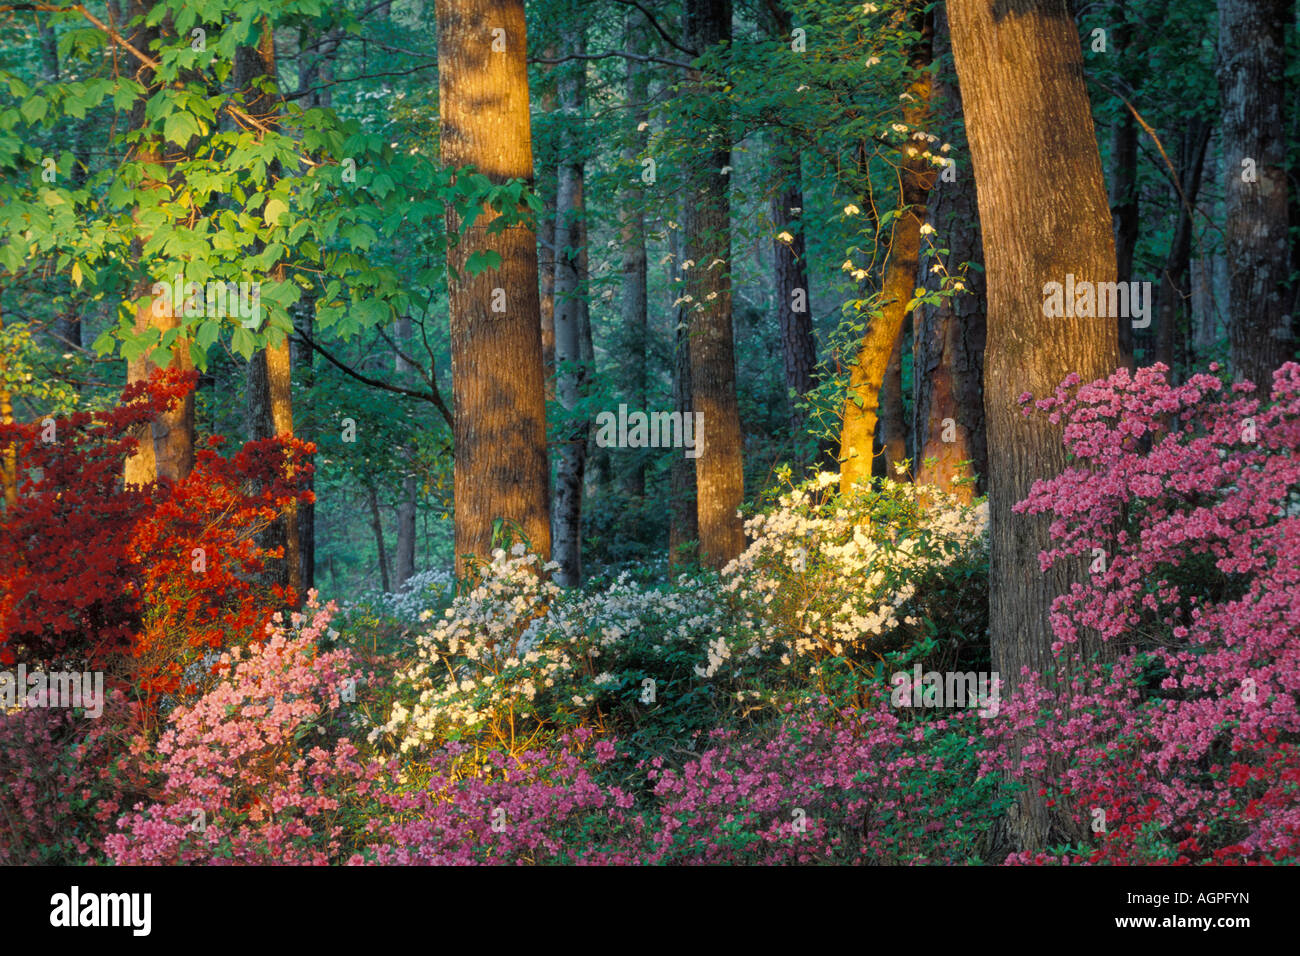 Usa Georgia Callaway Gardens Azalea Forest Stock Photo Royalty